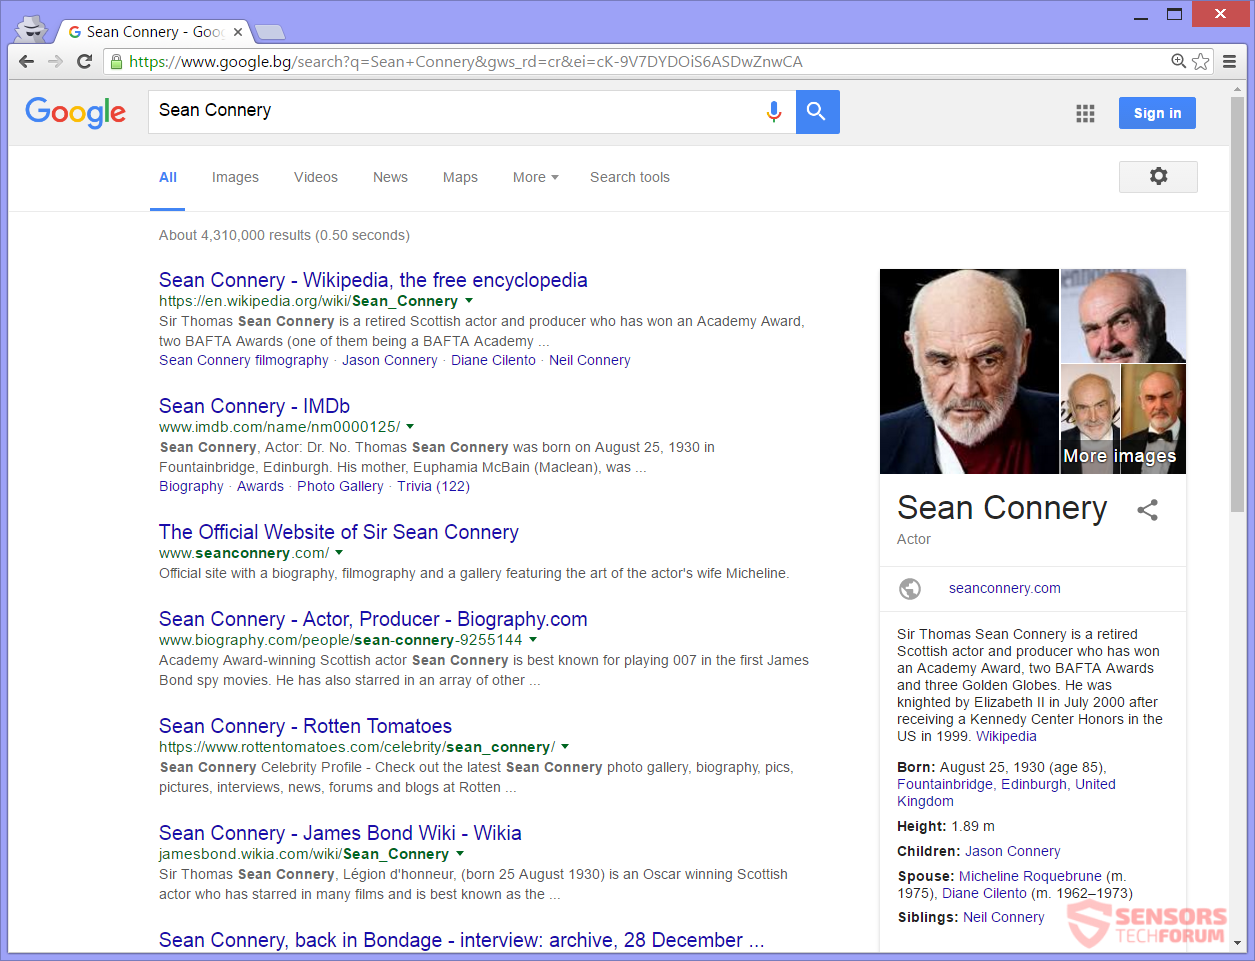 STF-start-dealrecovery-com-deal-recovery-sean-connery-redirect-search-results